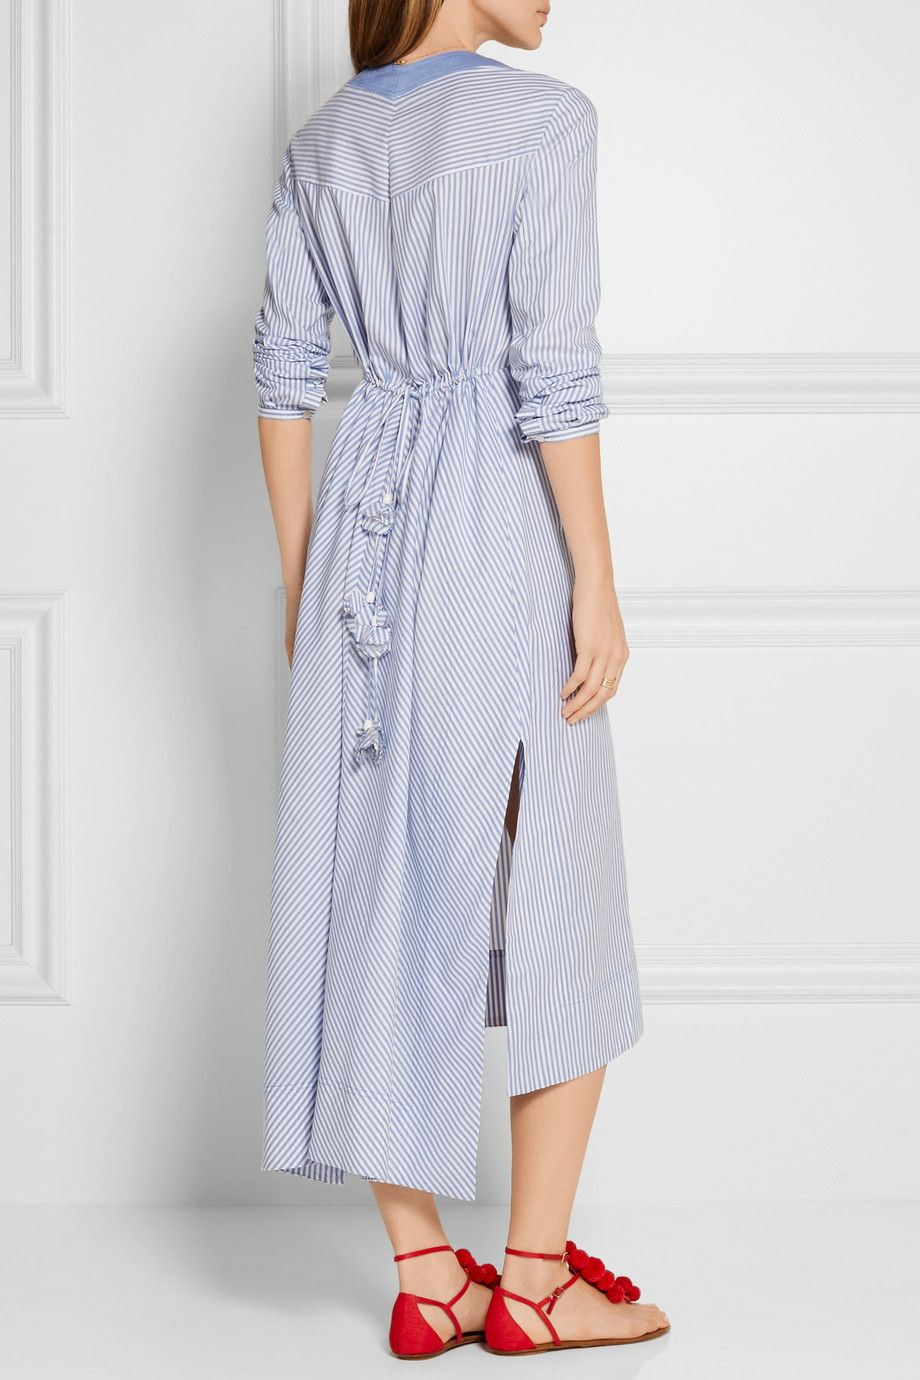 Tory Burch | Jade embroidered cotton Oxford midi dress | NET-A-PORTER.